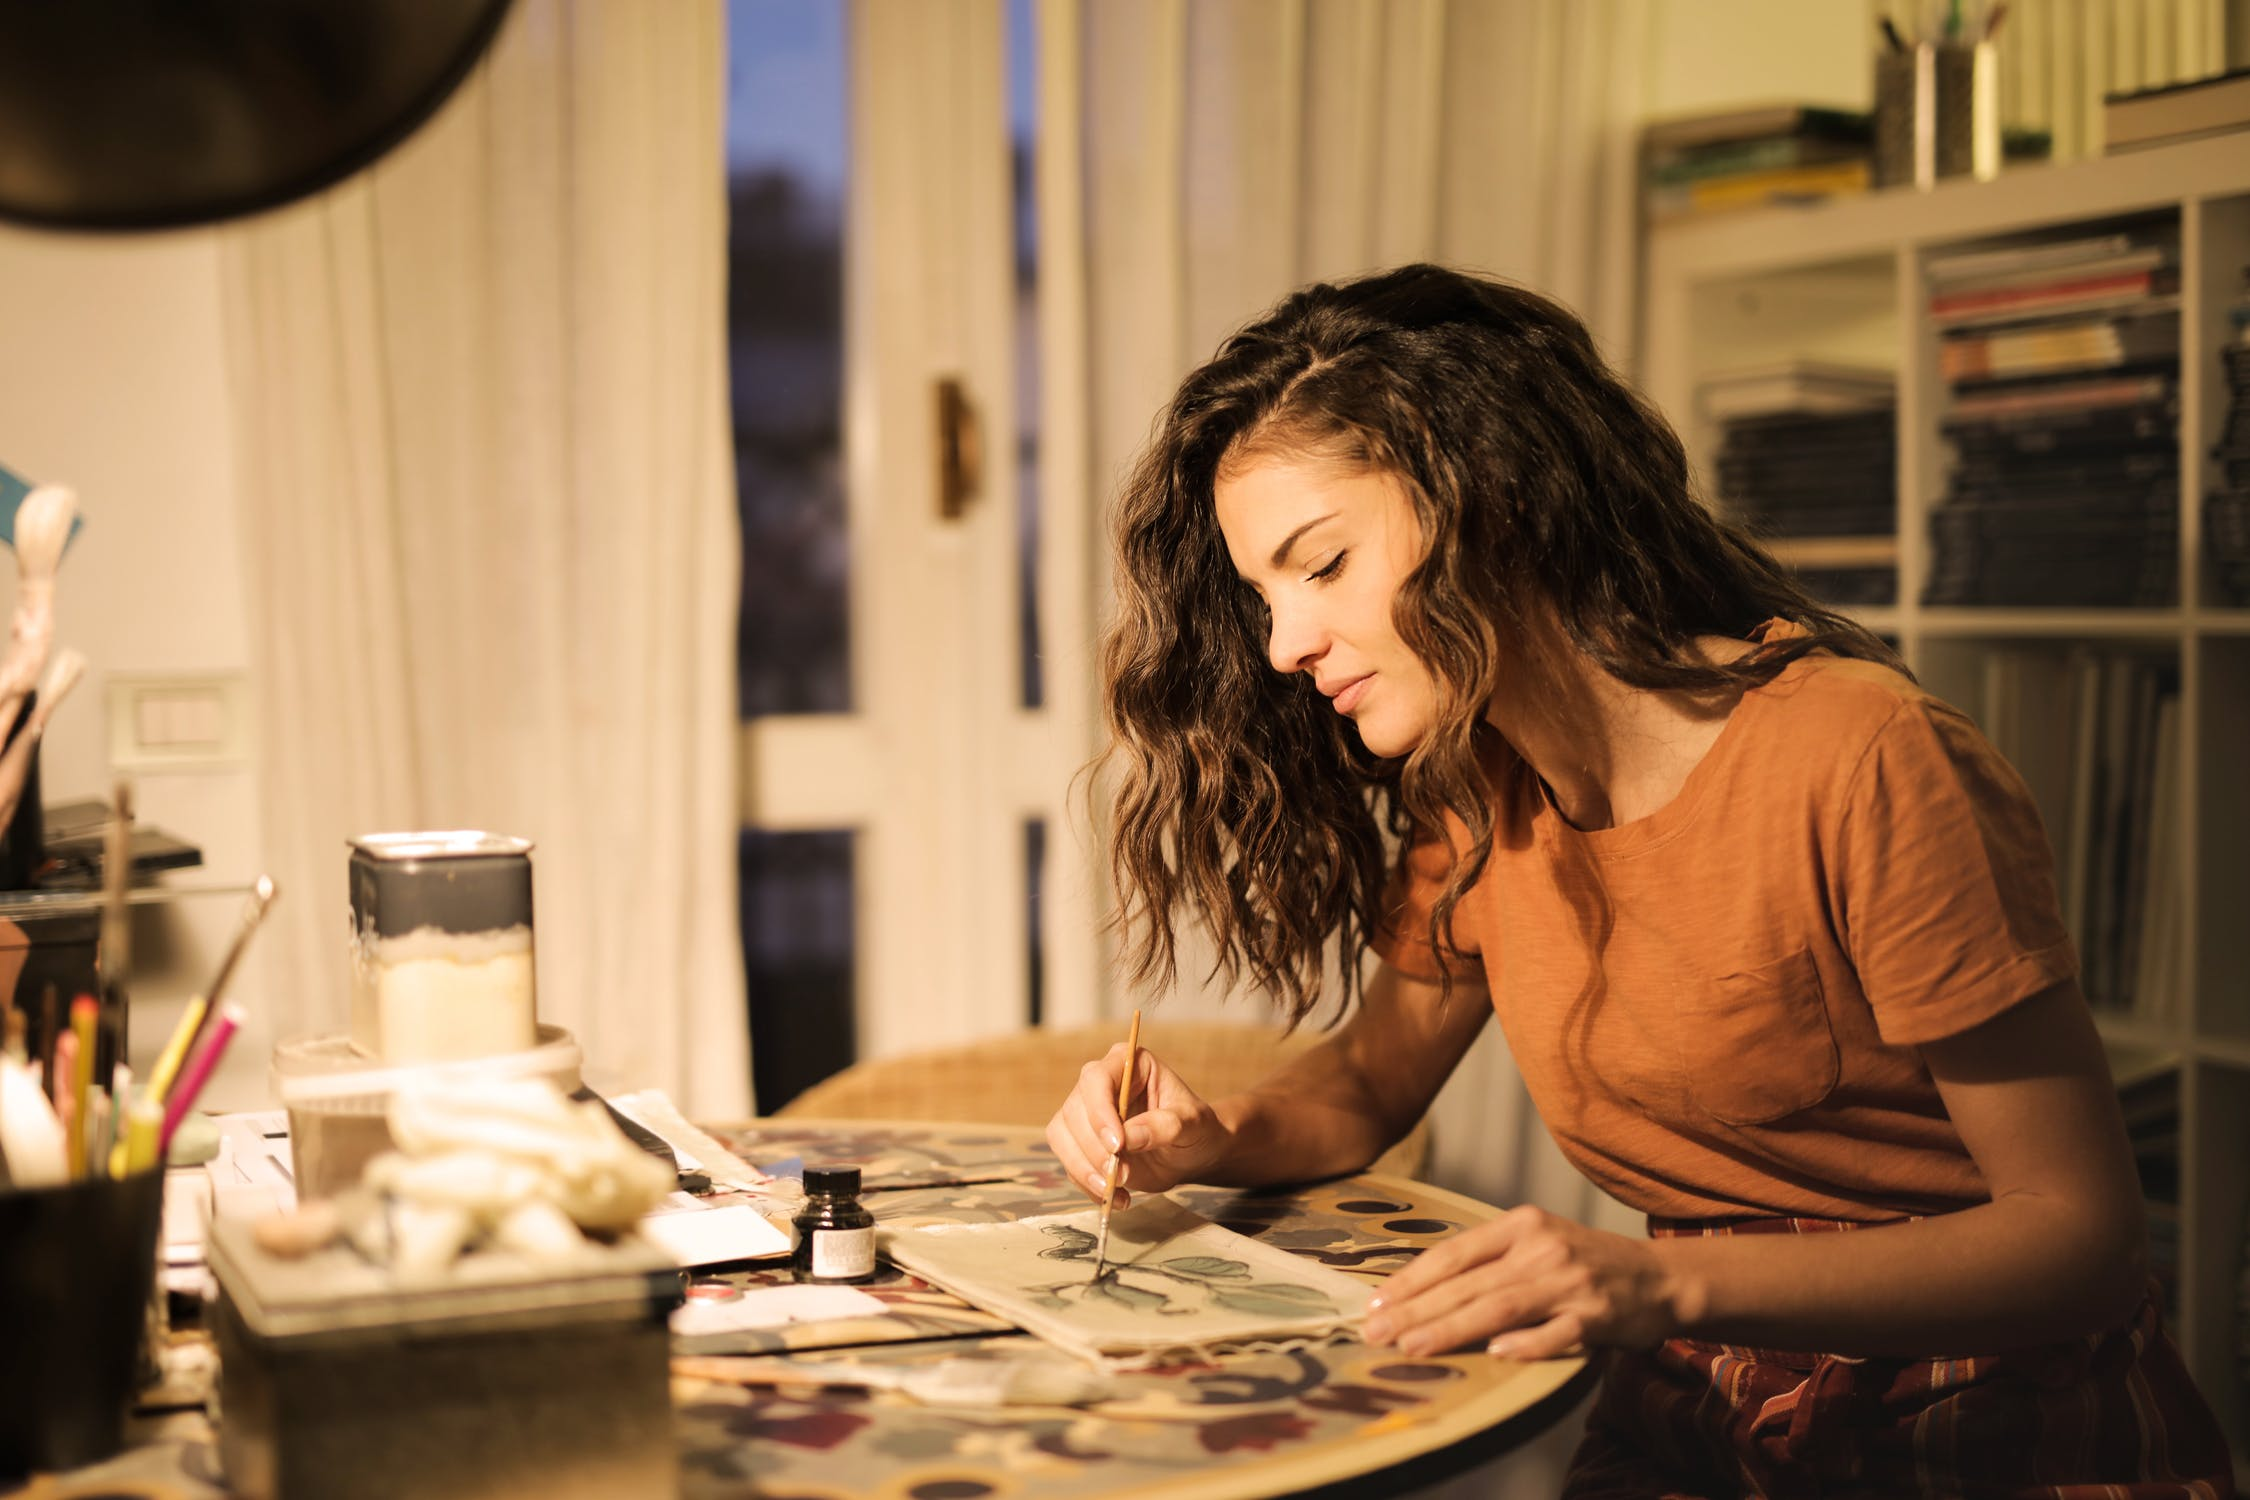 woman painting looking content